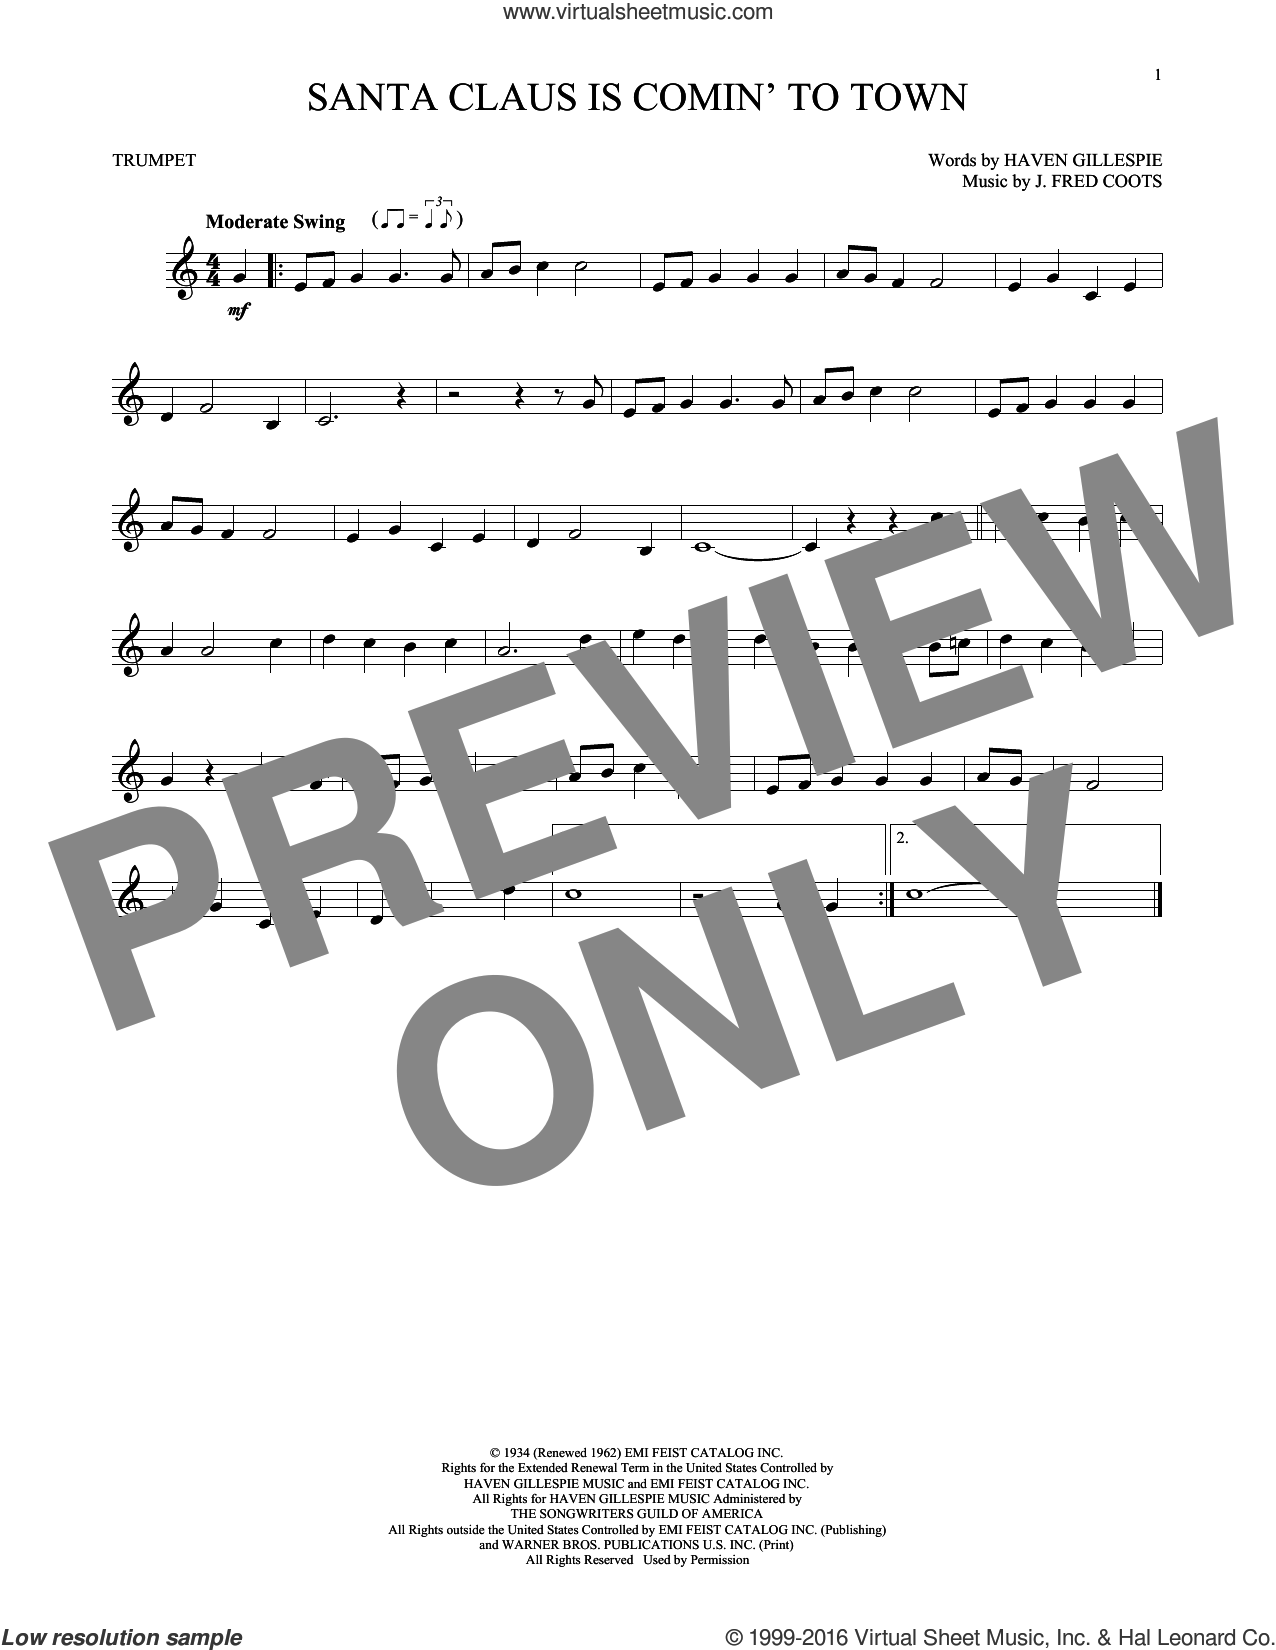 Santa Claus Is Comin' To Town sheet music for trumpet solo by J. Fred Coots and Haven Gillespie, intermediate skill level